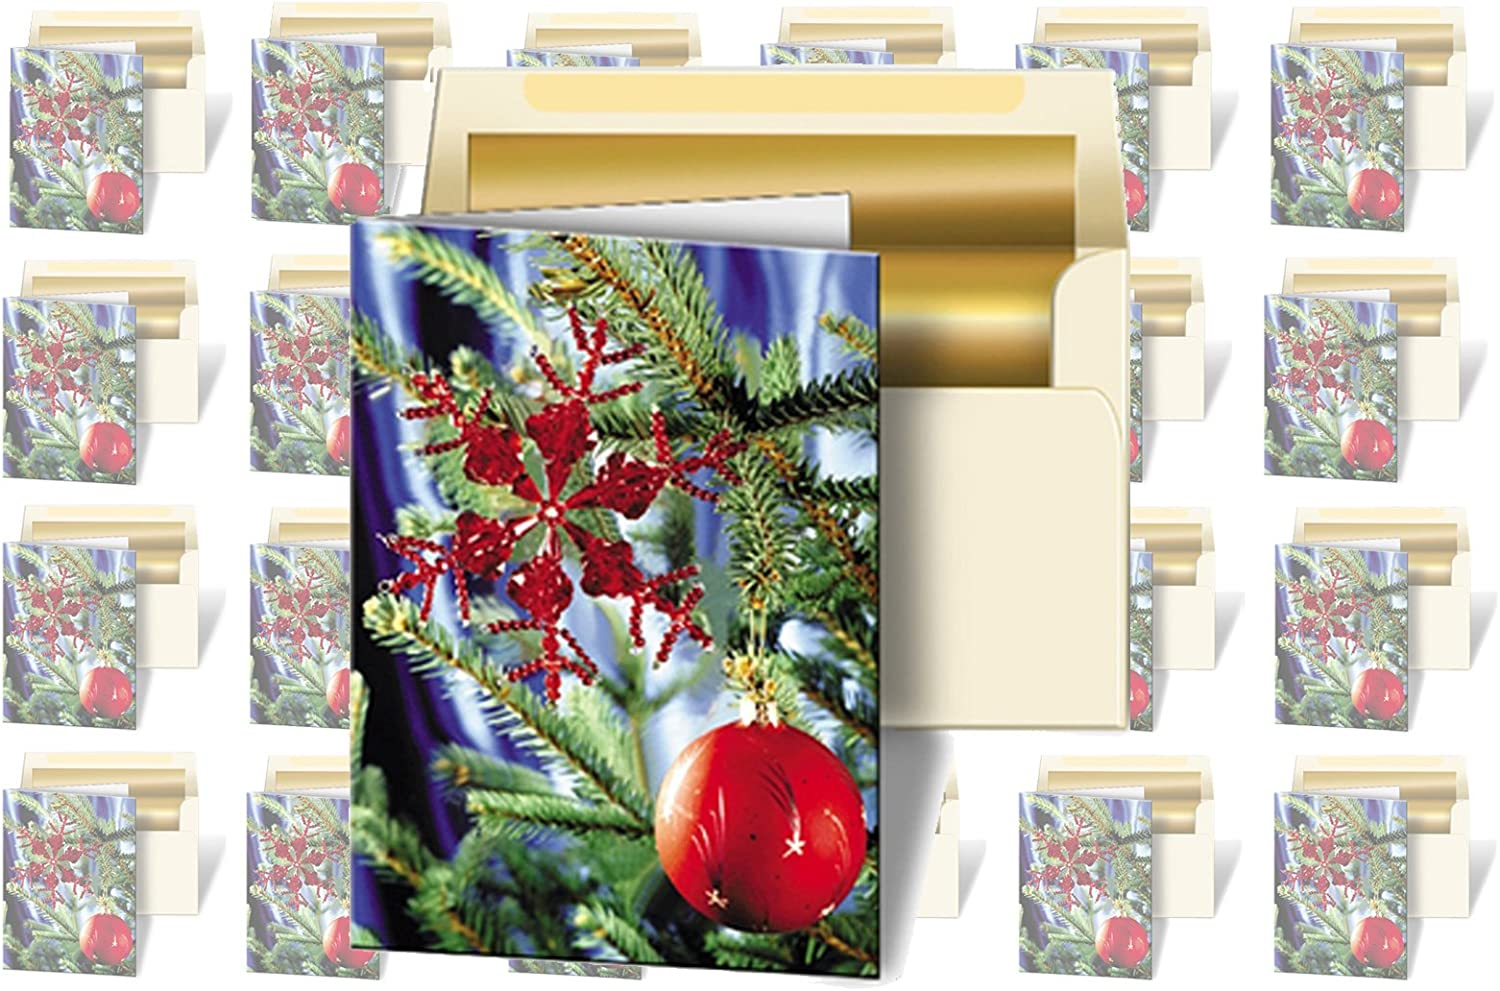 Tree Greeting Cards 3D Lenticular Christmas Cards Image with Christmas Ornament Set of 24